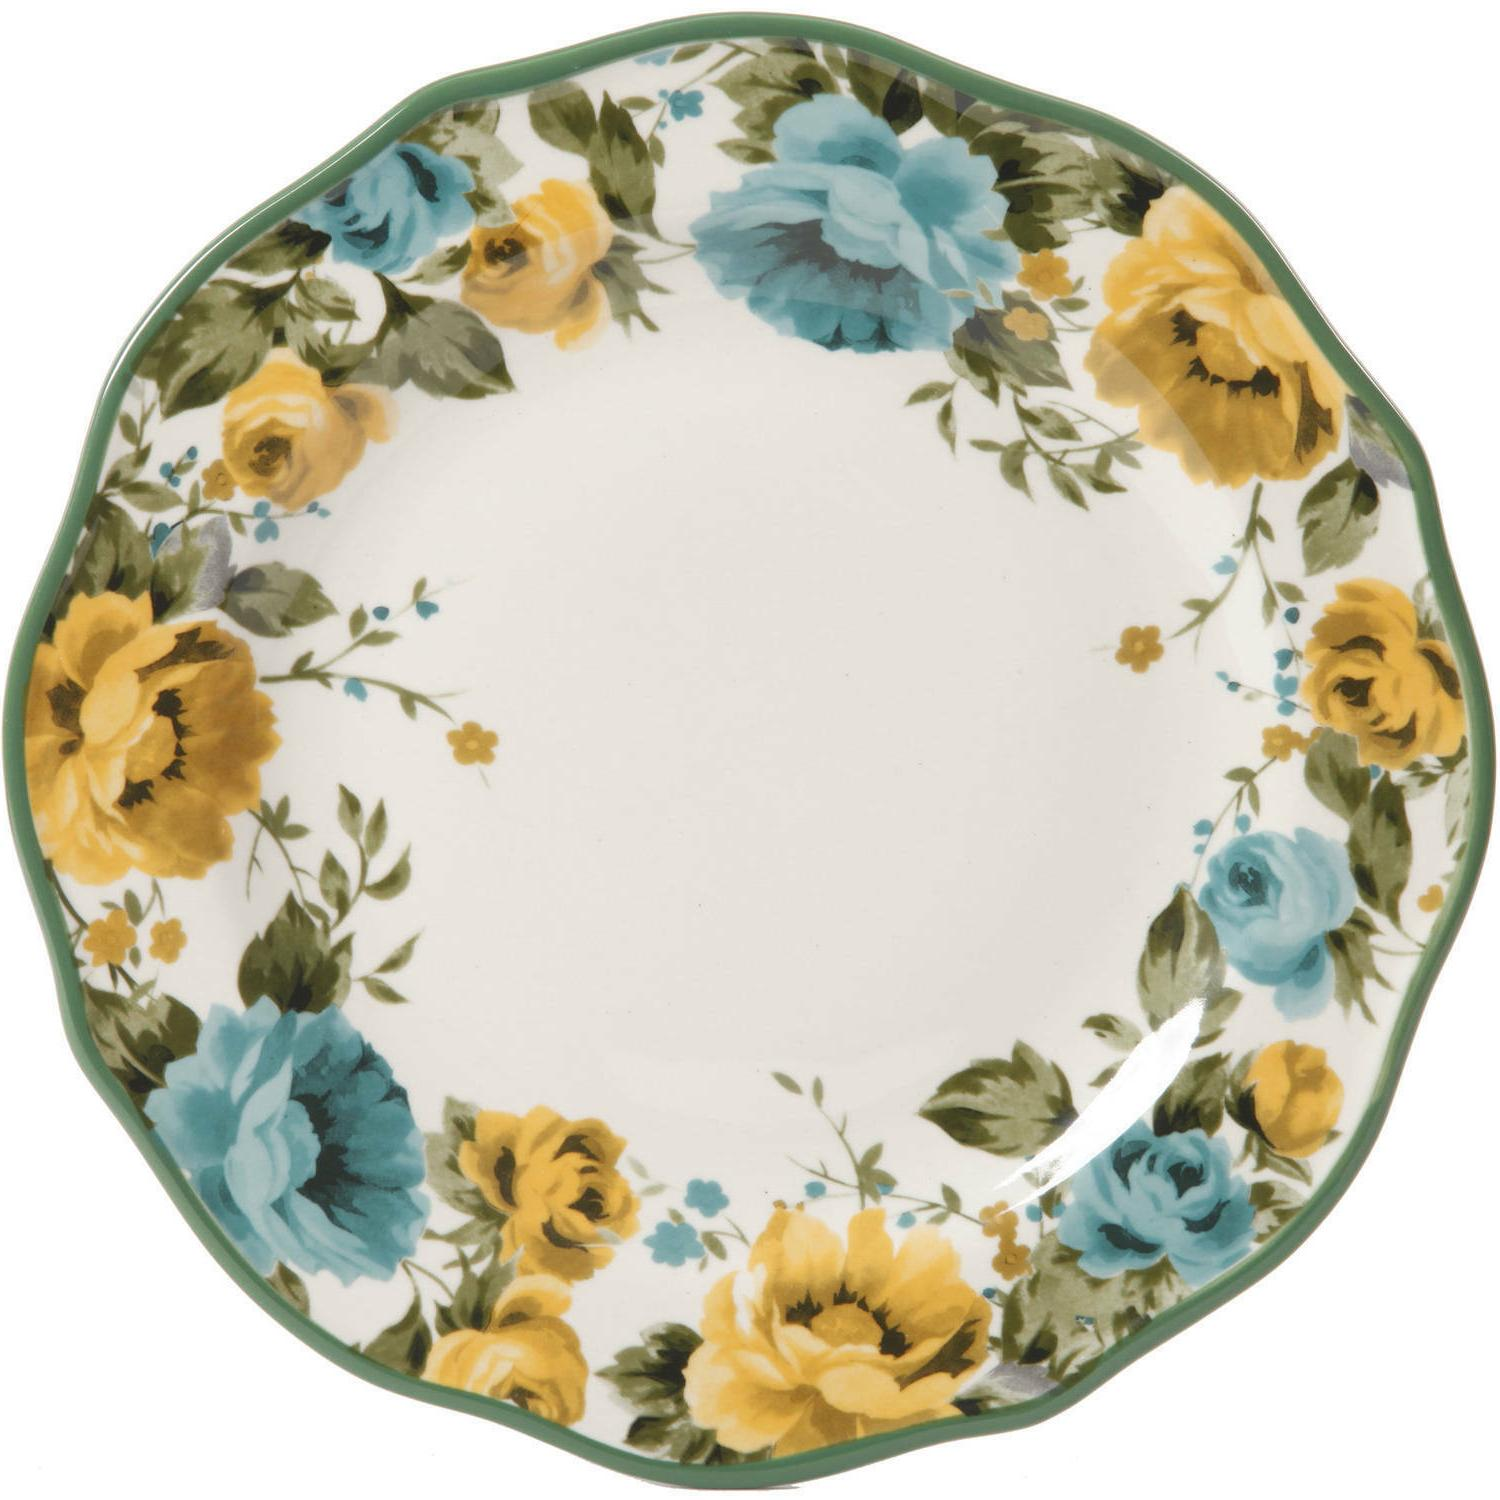 The Woman 12-Piece Dinnerware